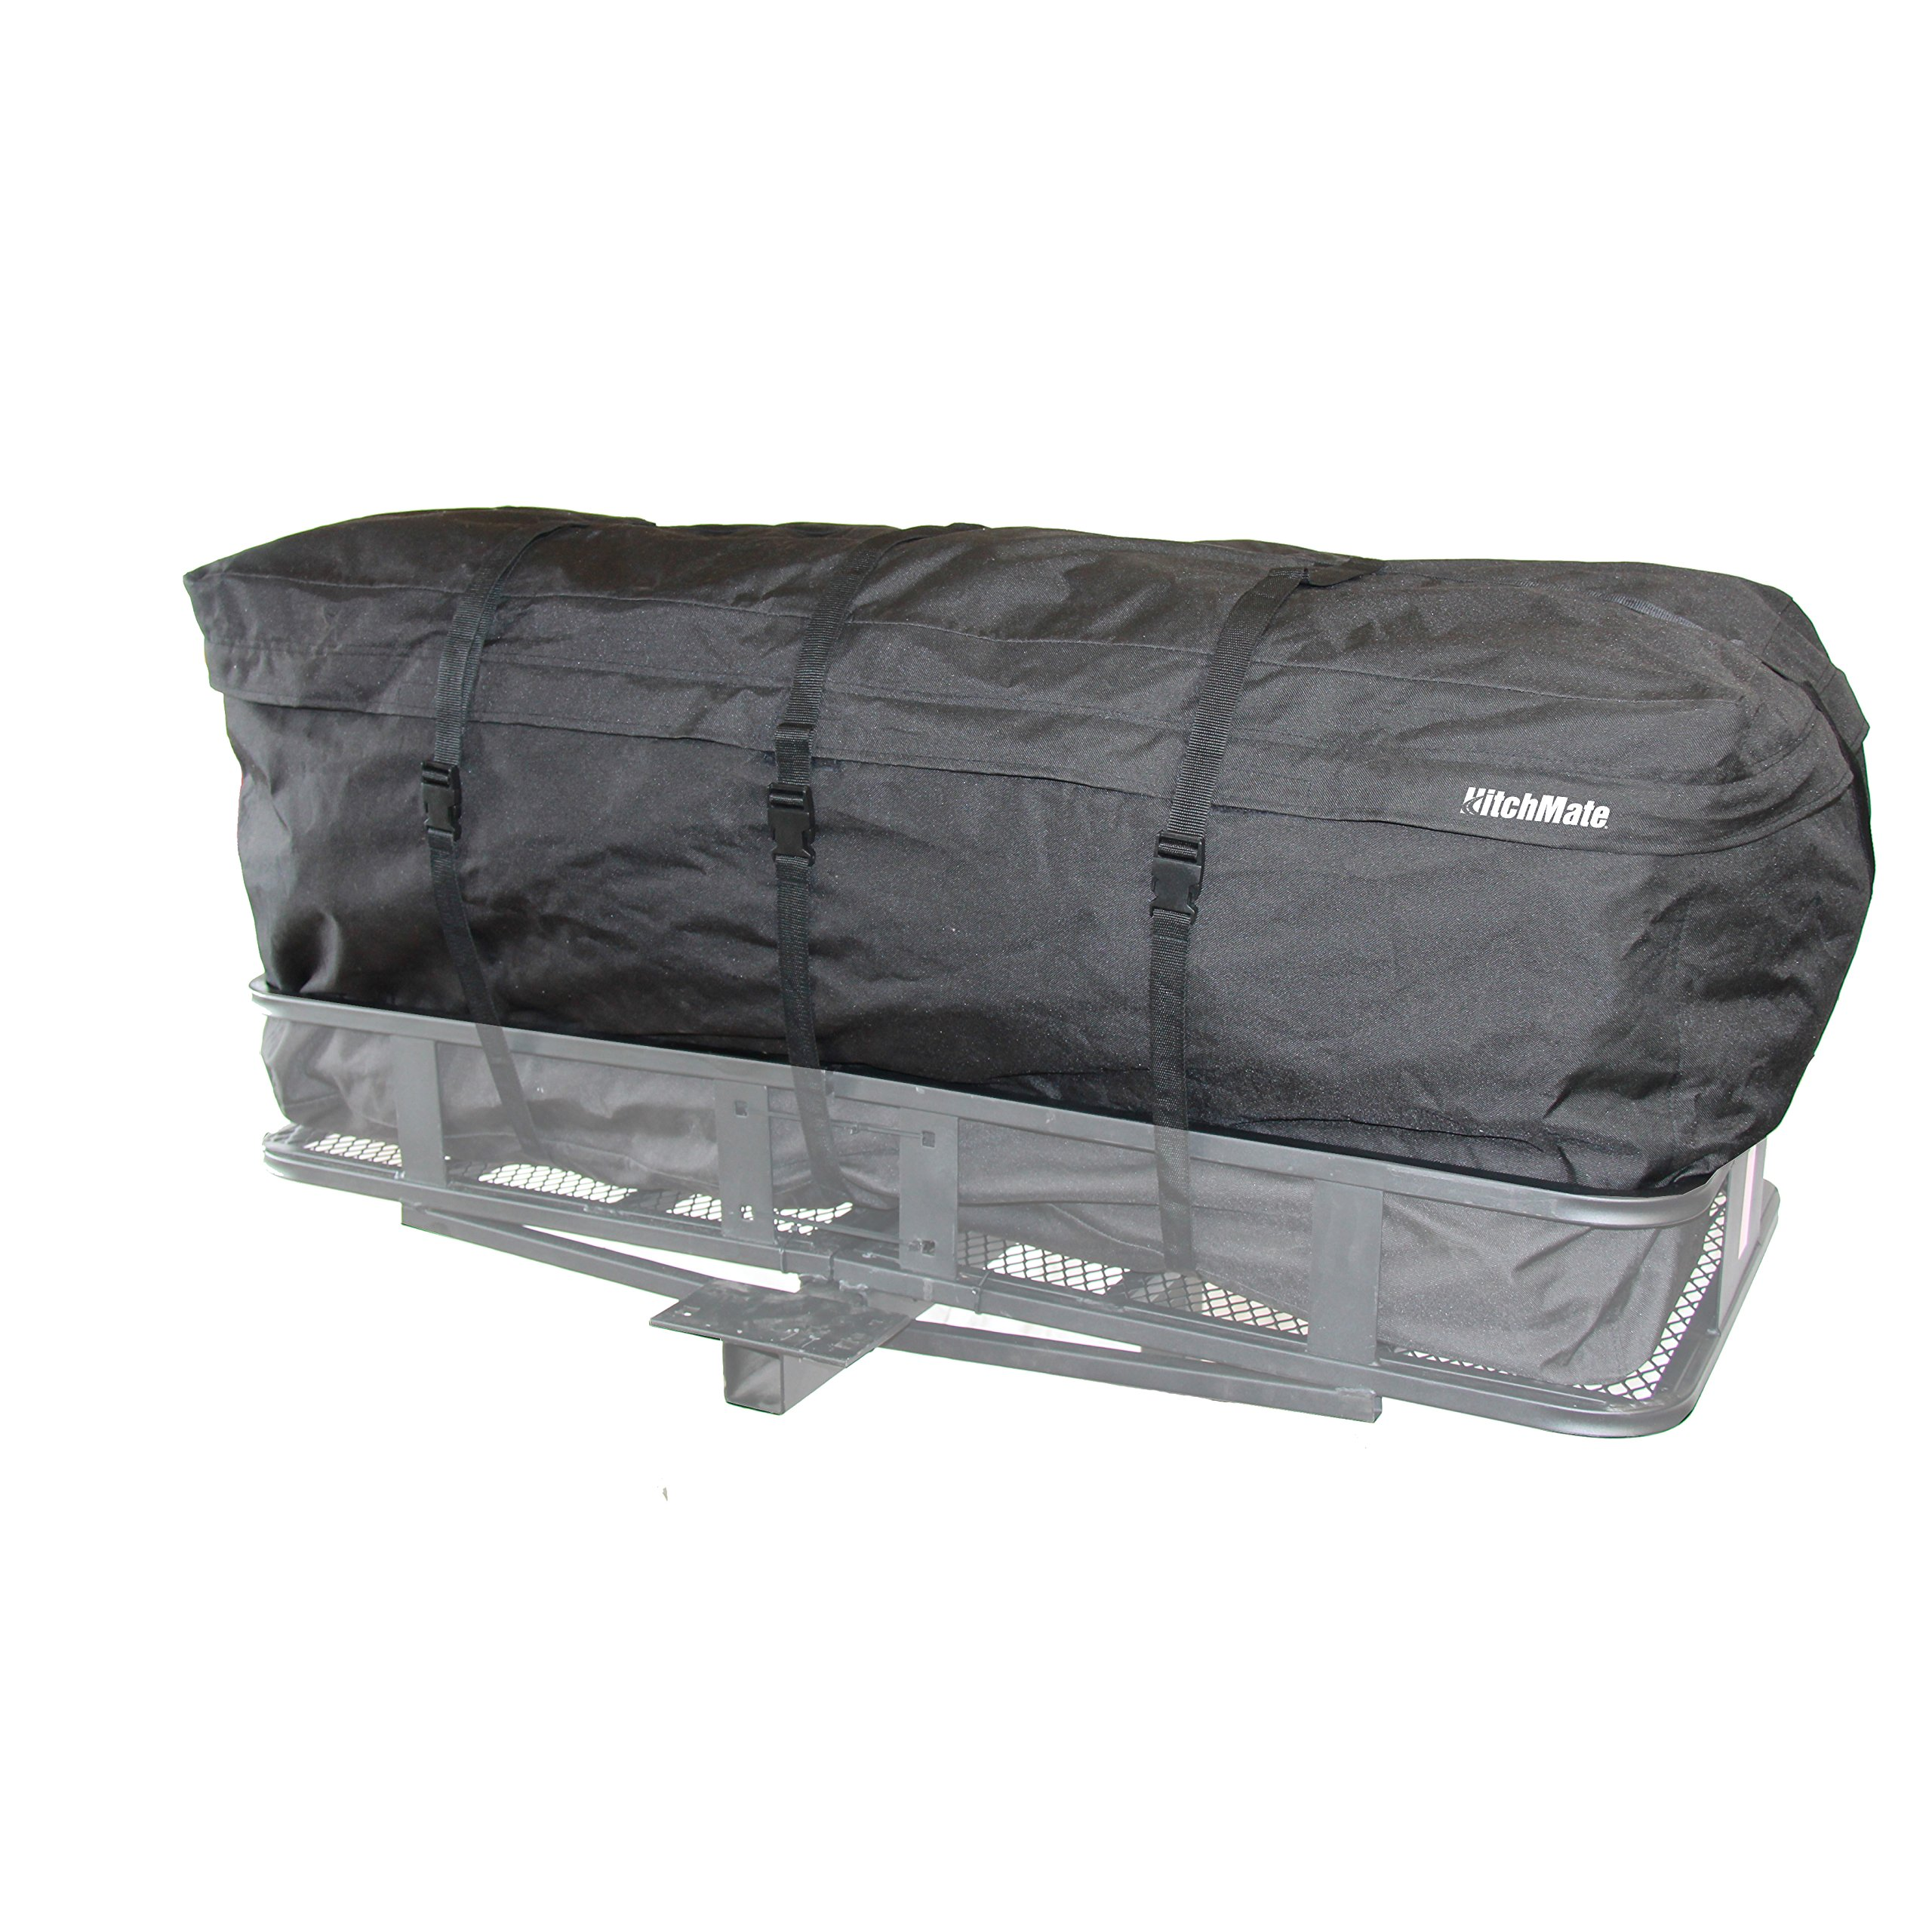 Heininger 3019 Cargo Carrier Bag (HitchMate CargoLoad, 12 c.u. ft) by Heininger